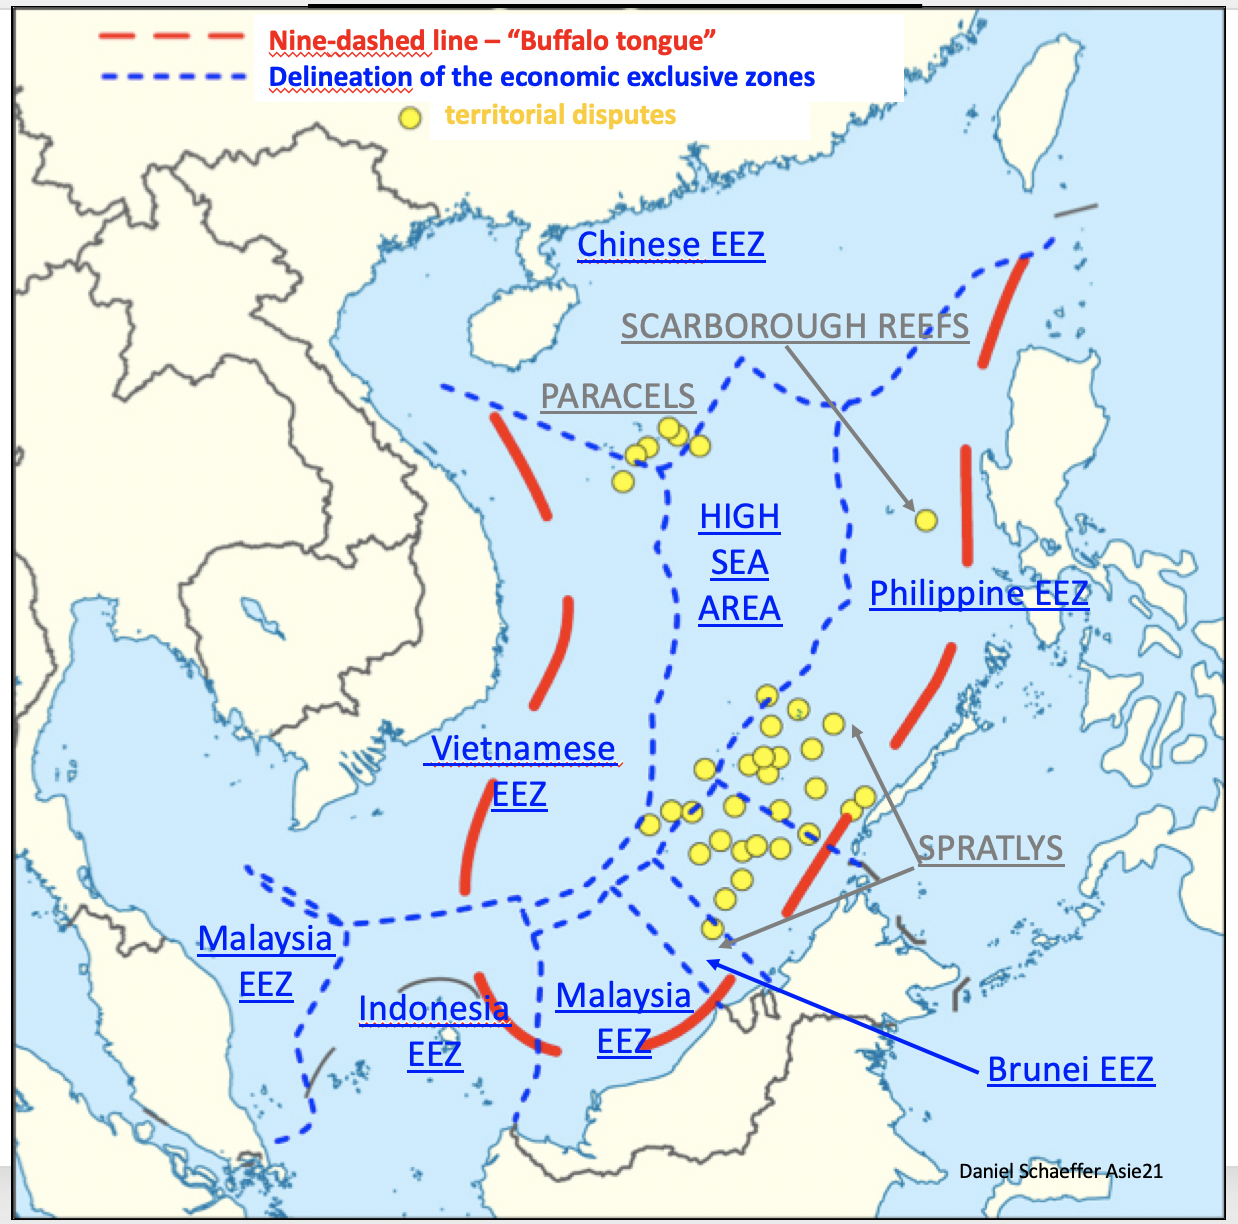 South China Sea: When the ASEAN nations are continuing weaving the Chinese rope that will hang them   當東盟國家繼續編織將吊掛它們的中國繩索